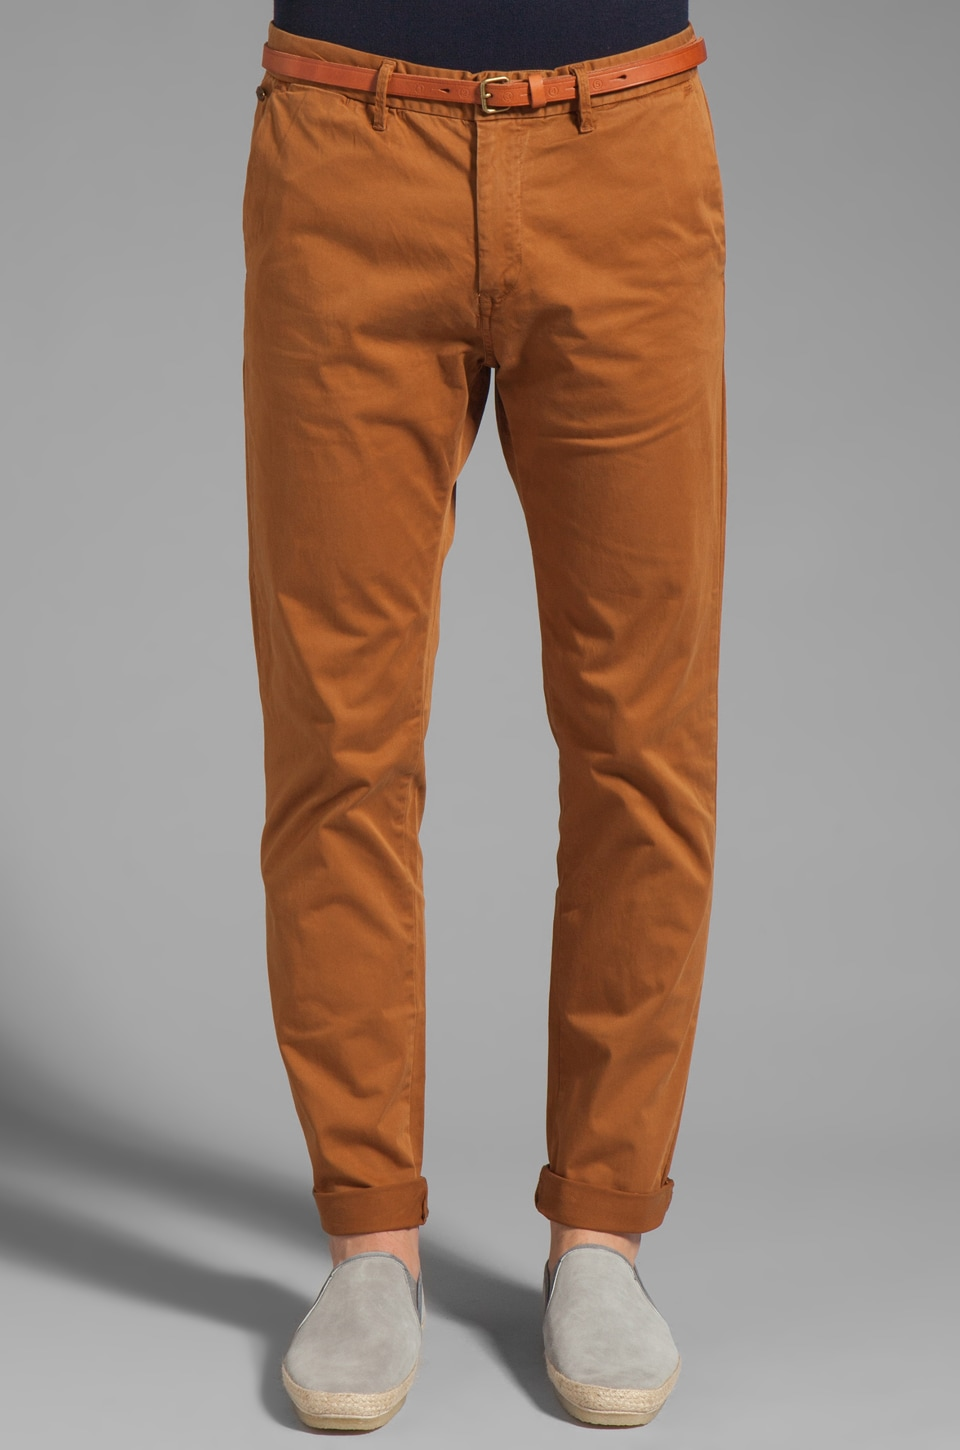 Scotch & Soda Belted Chino Pant in Walnut